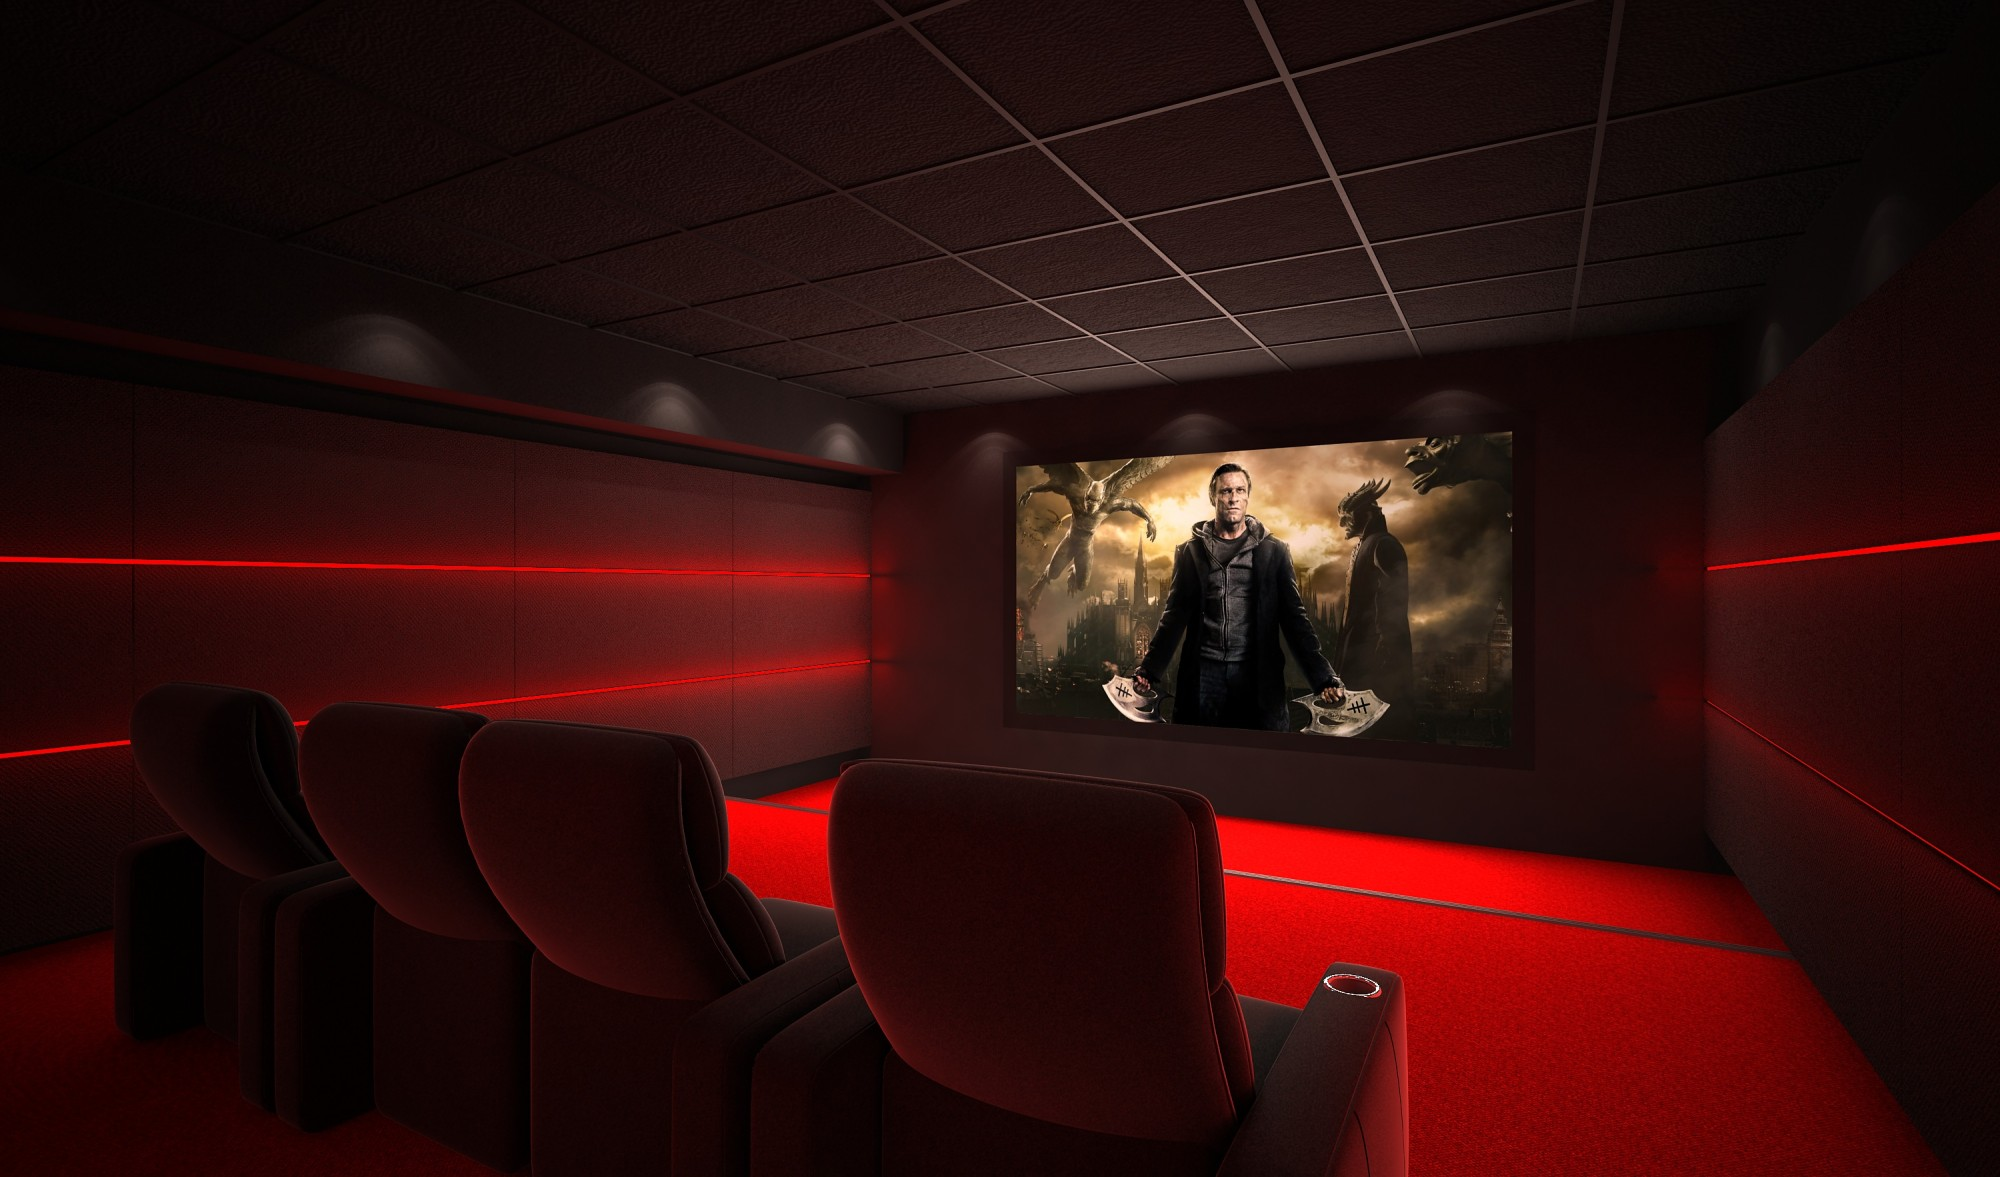 Salle de home cinema priv e marseille a dynamic home cinema mon cin priv - Construire sa salle de cinema ...